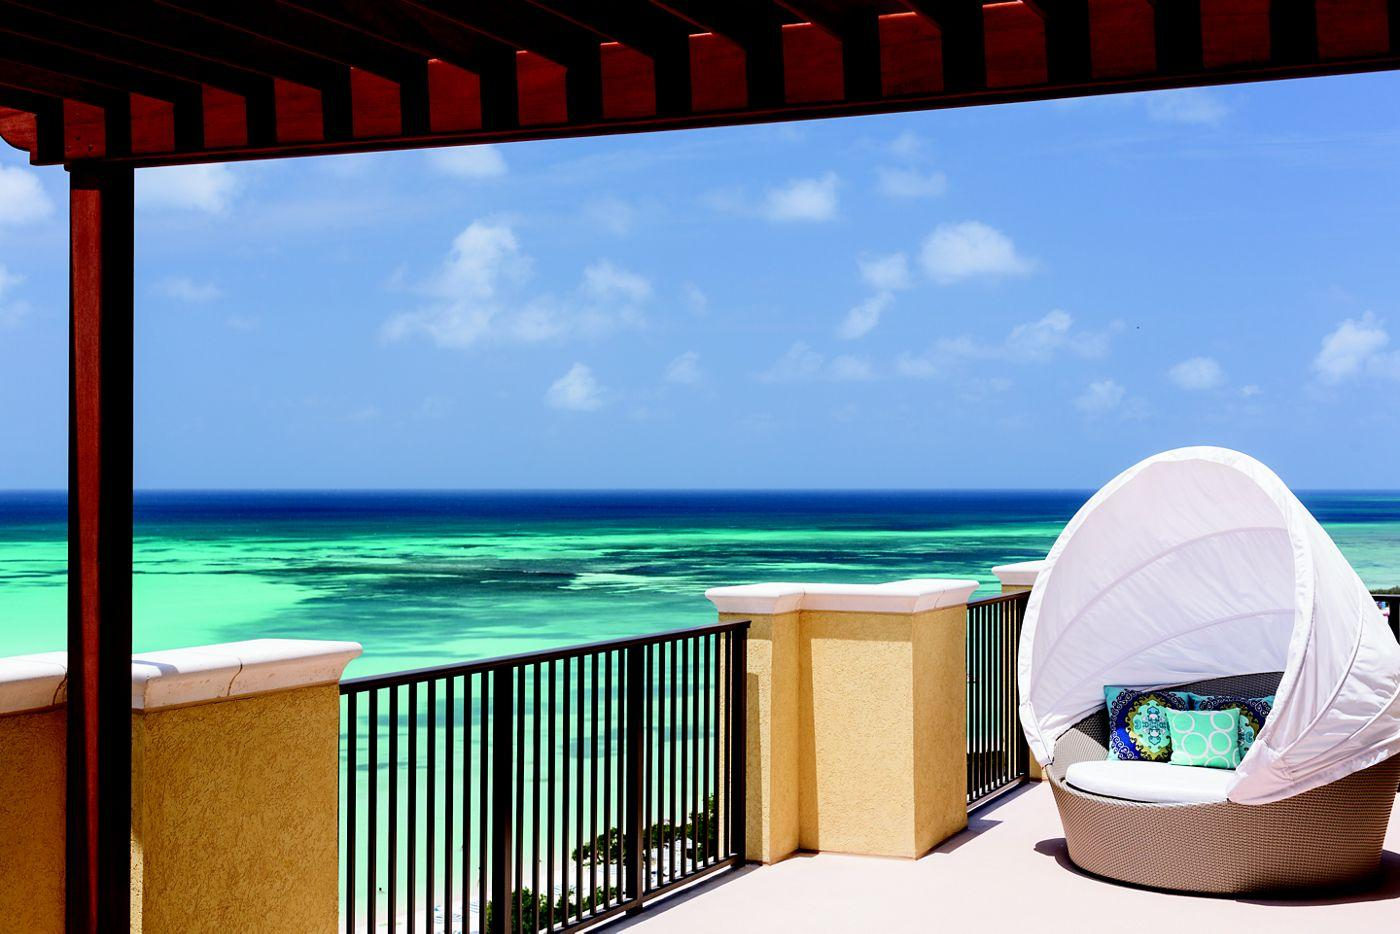 Ritz Carleton Aruba, aruba hotels, one happy island, hotels, honeymoon, weddings, destination wedding